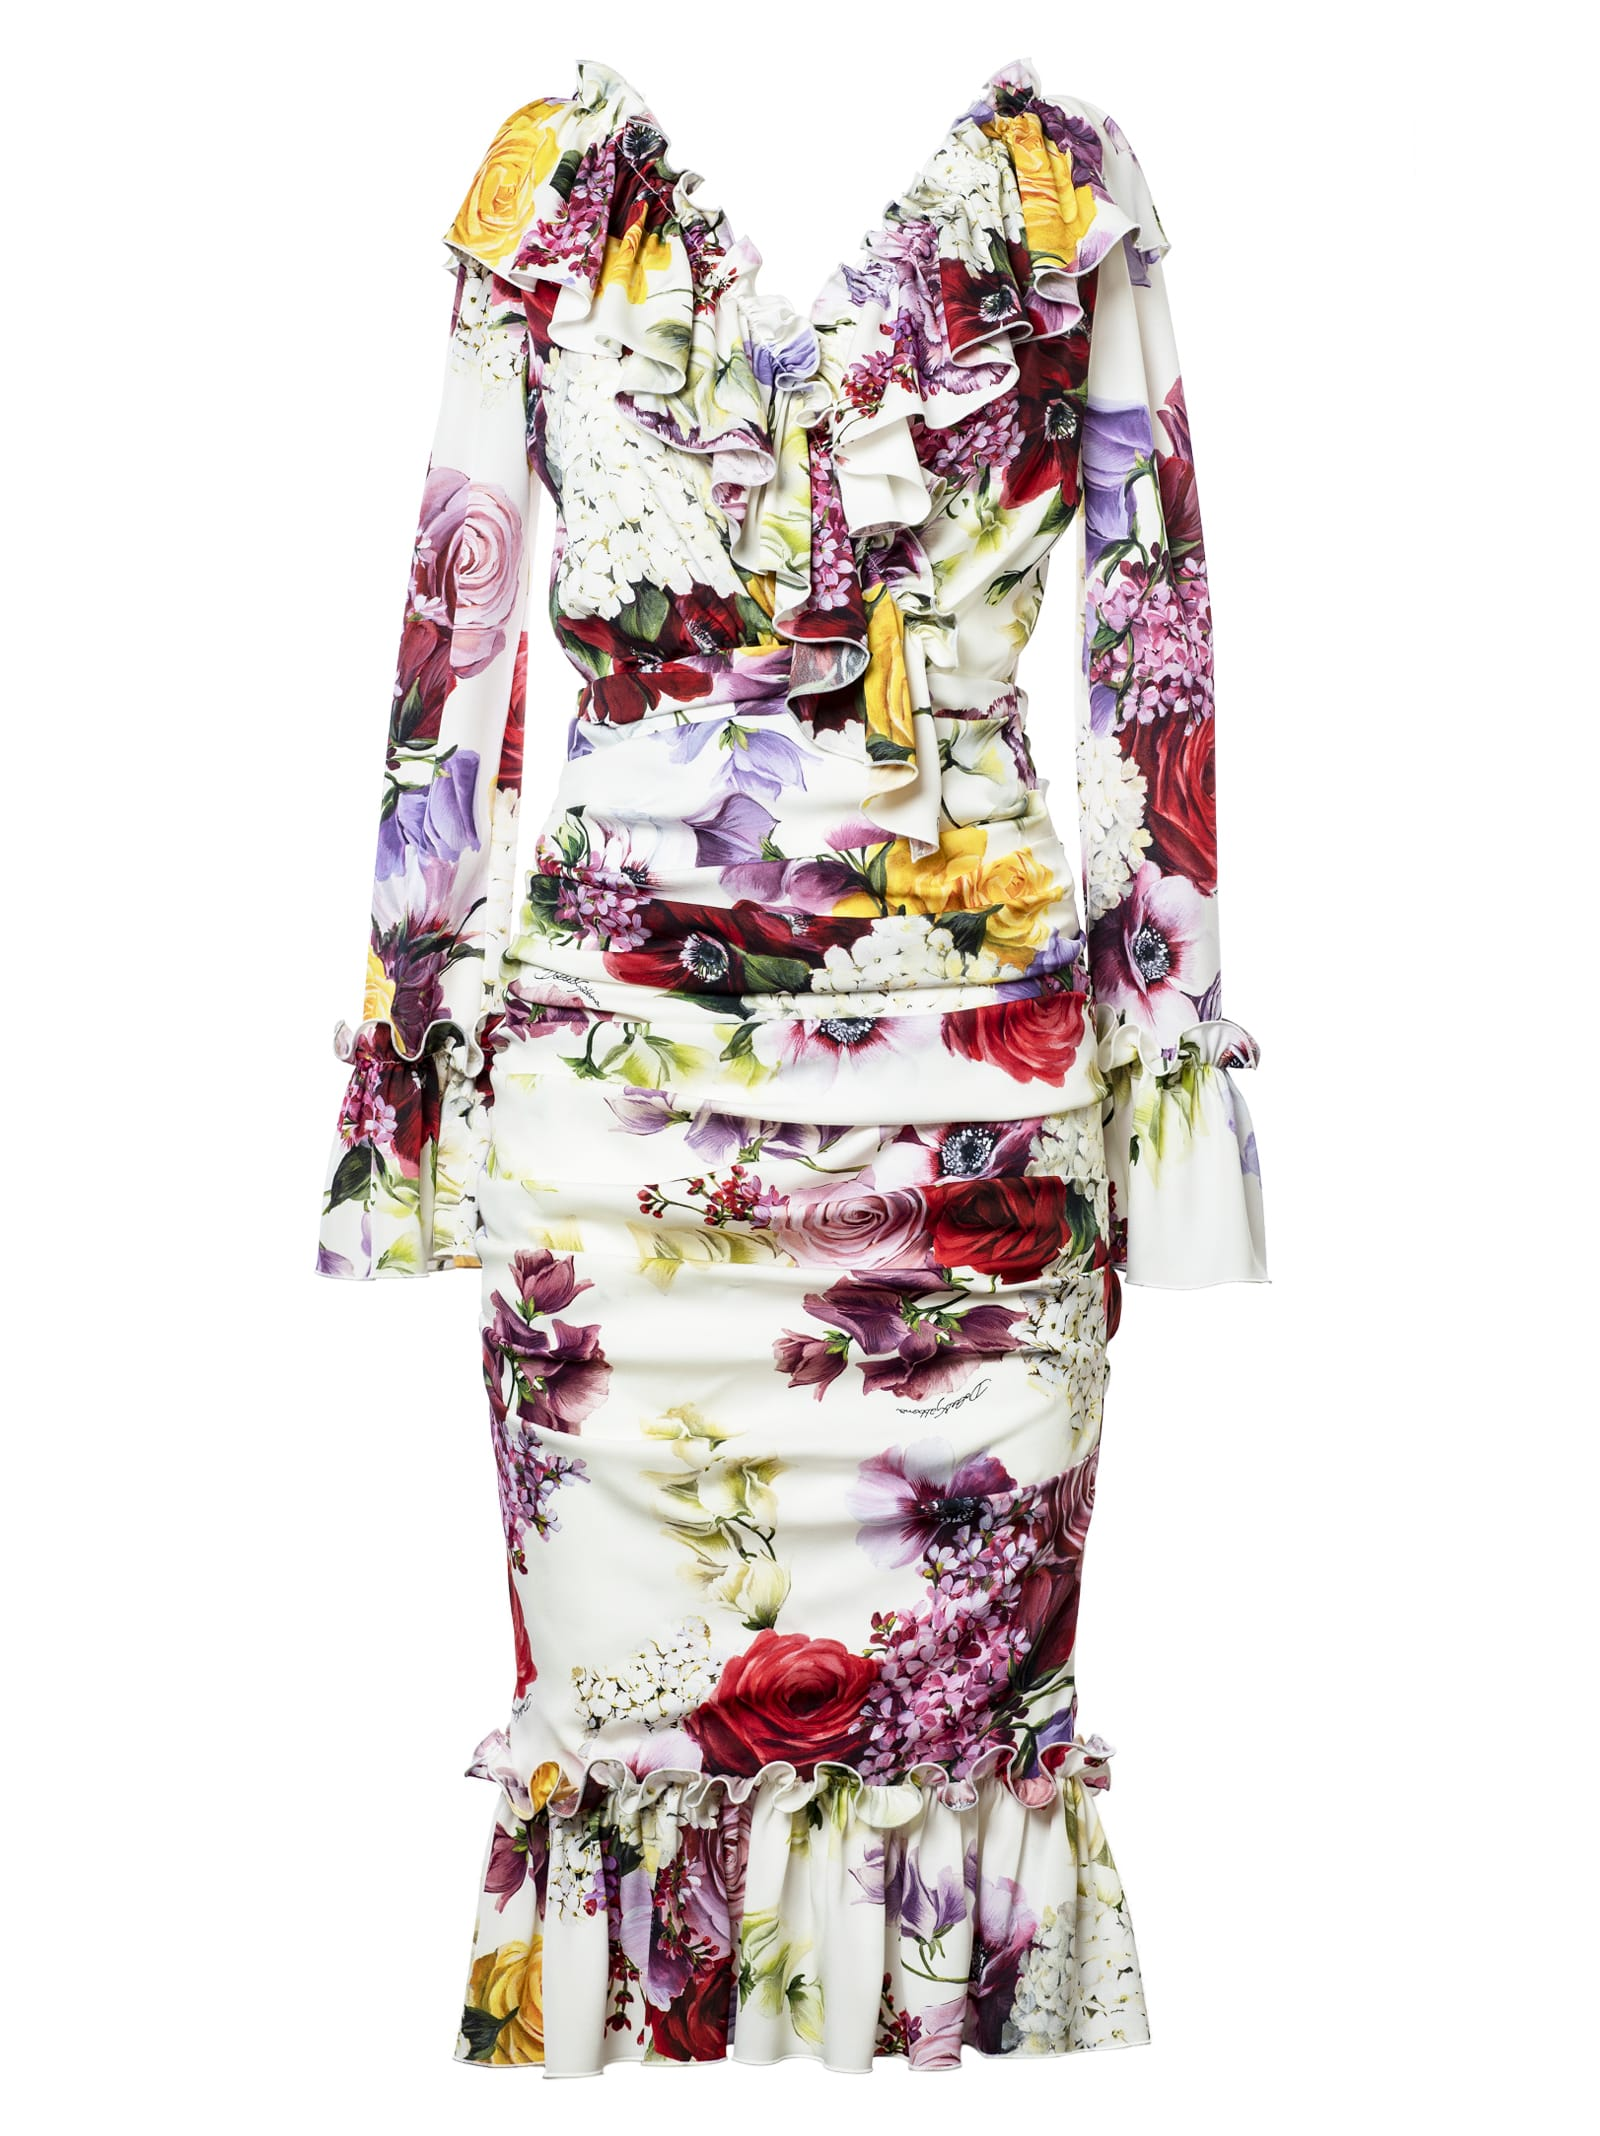 Dolce & Gabbana Ruffle Floral Charmeuse Dress